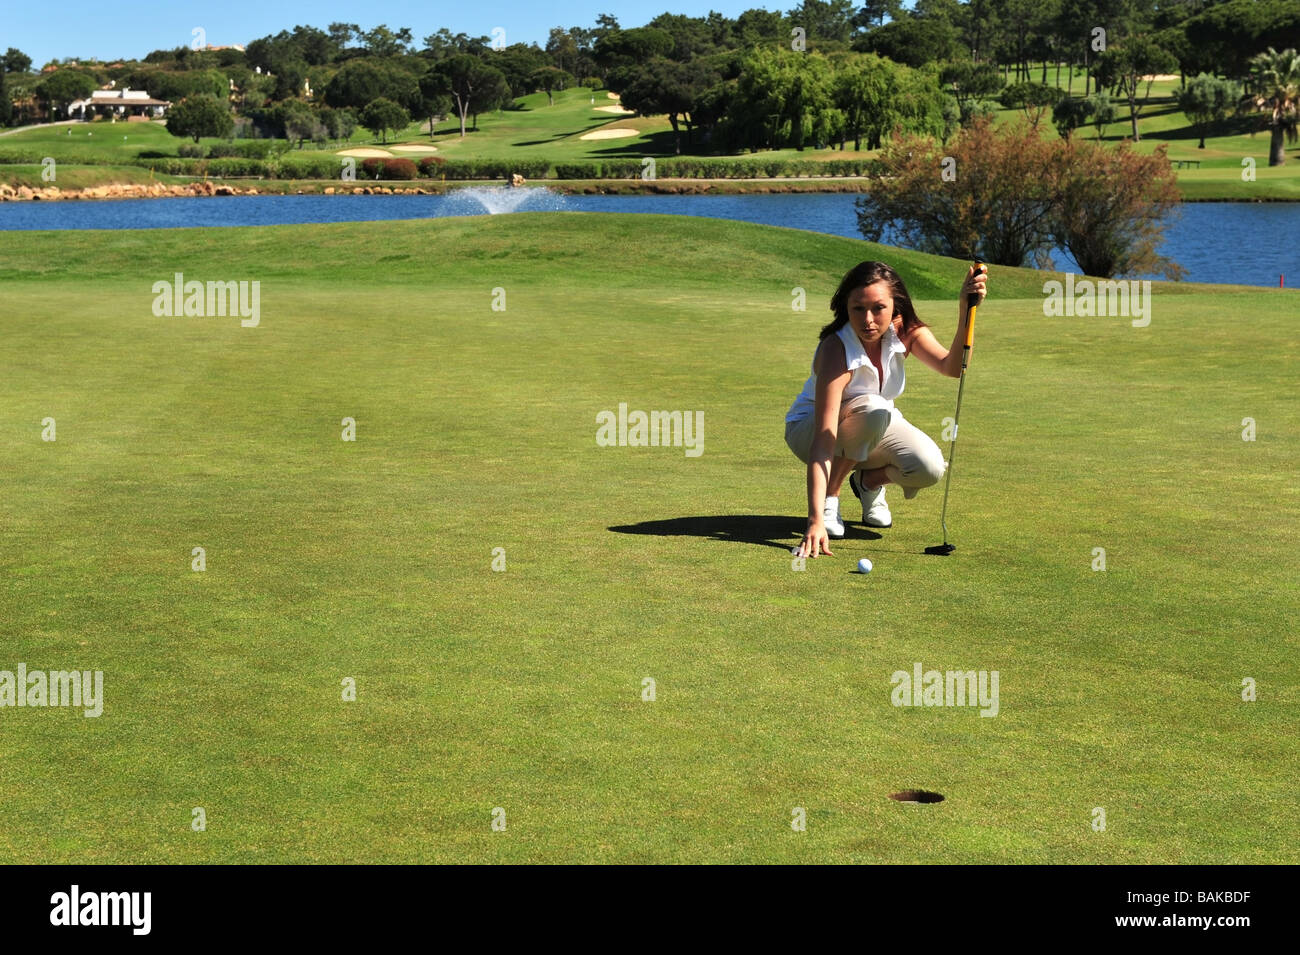 Lady golfer deciding on the best approach before taking her shot. - Stock Image